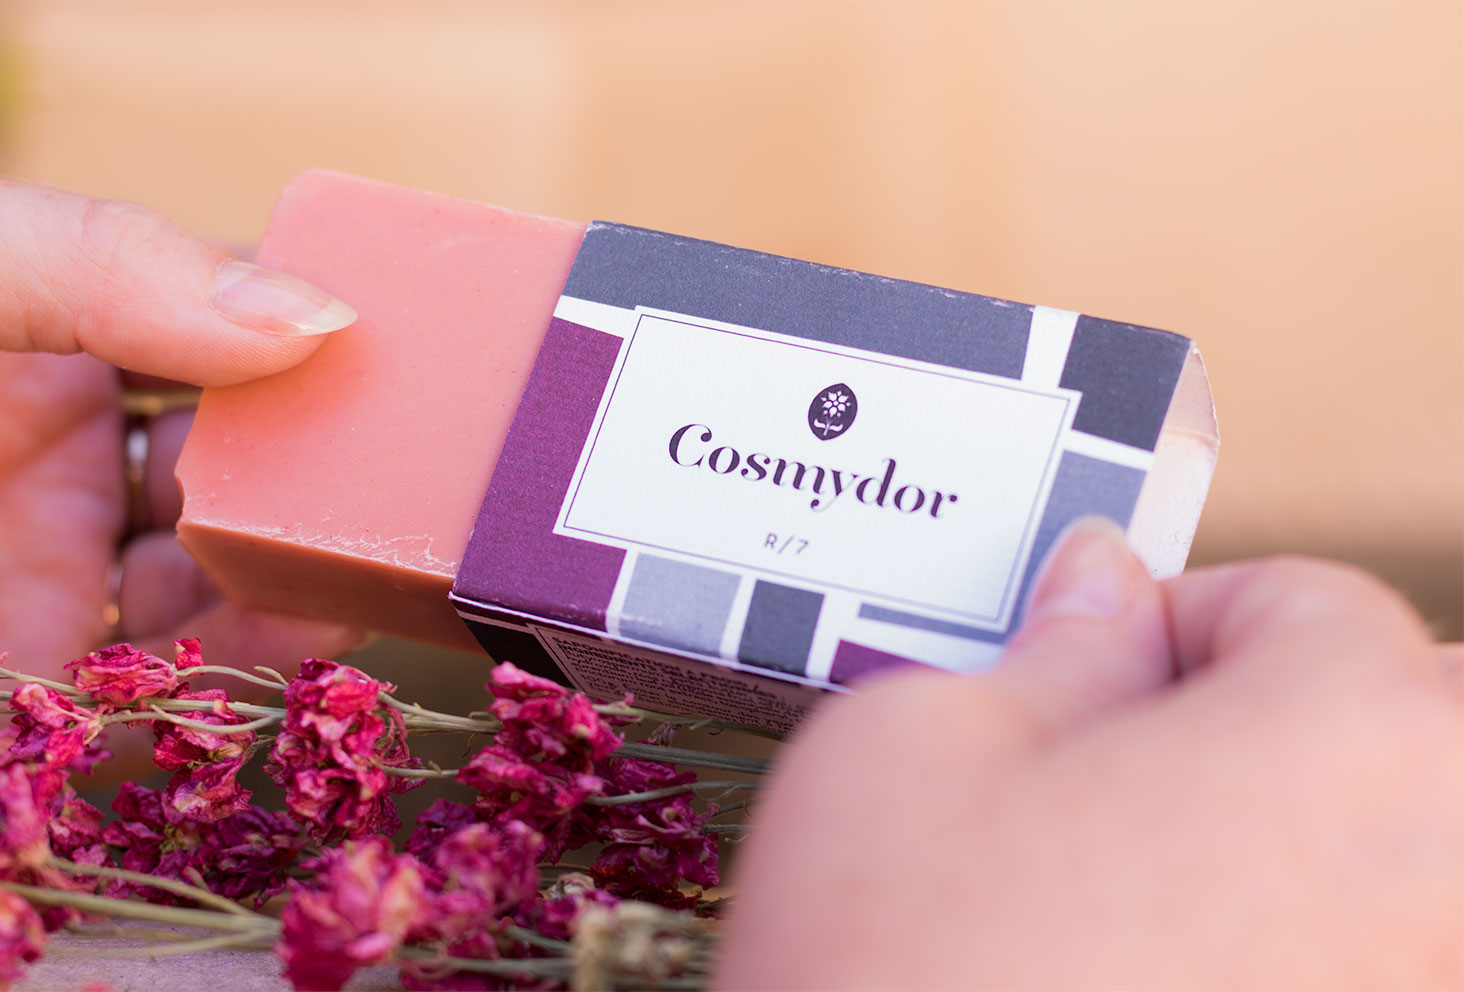 Zoom sur le packaging du savon solide R/7 rose de Cosmydor entre les mains